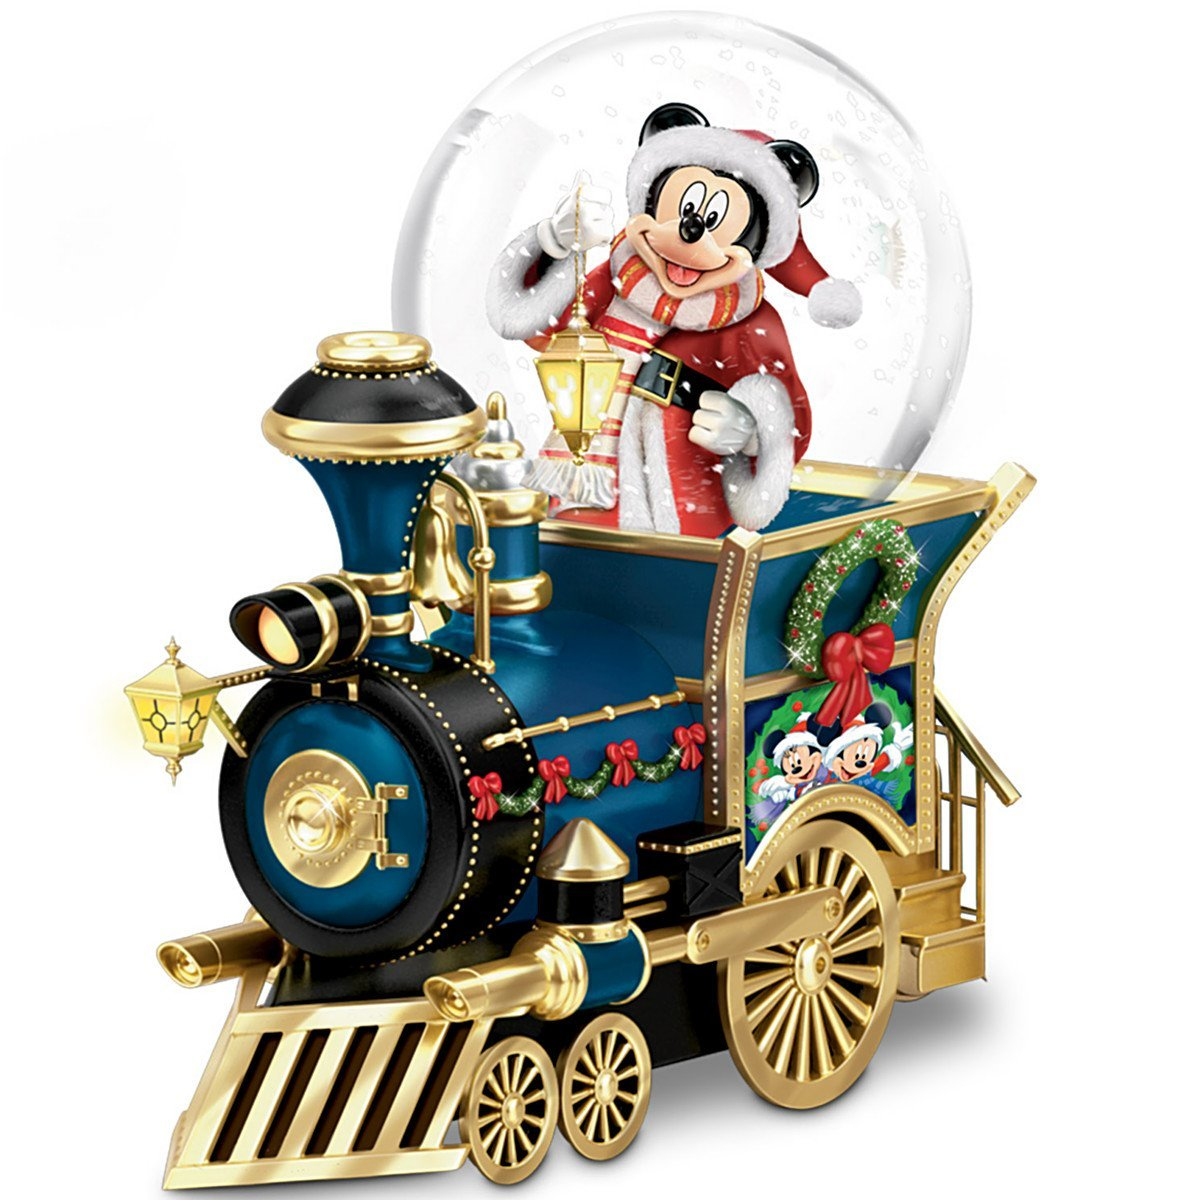 Collectible Disney Snowglobes